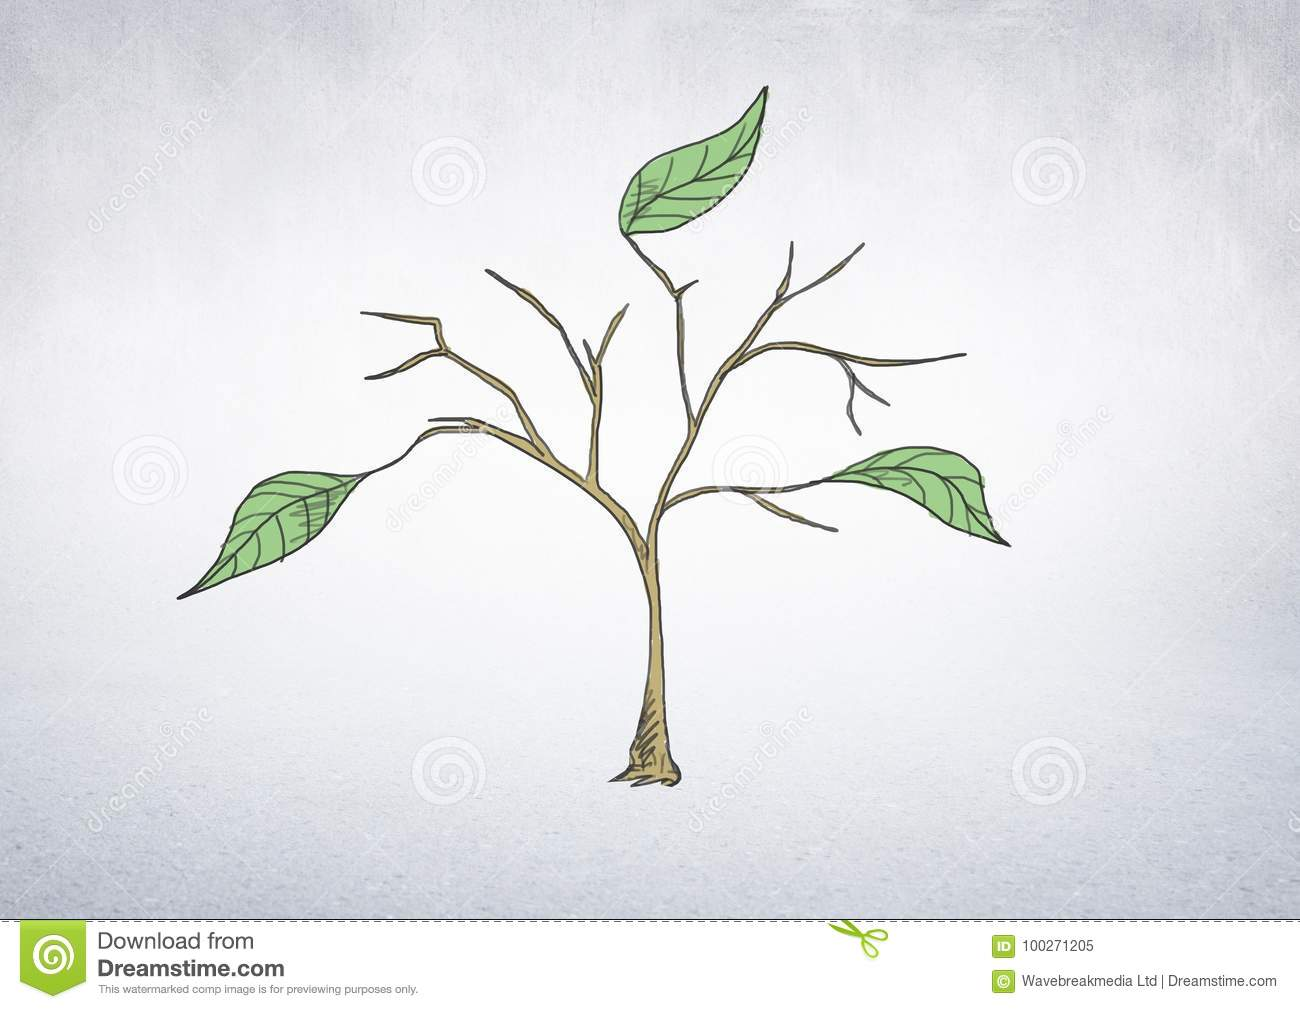 Drawing Of Plant Branches And Leaves On Wall Stock Illustration Illustration Of People Digitally 100271205